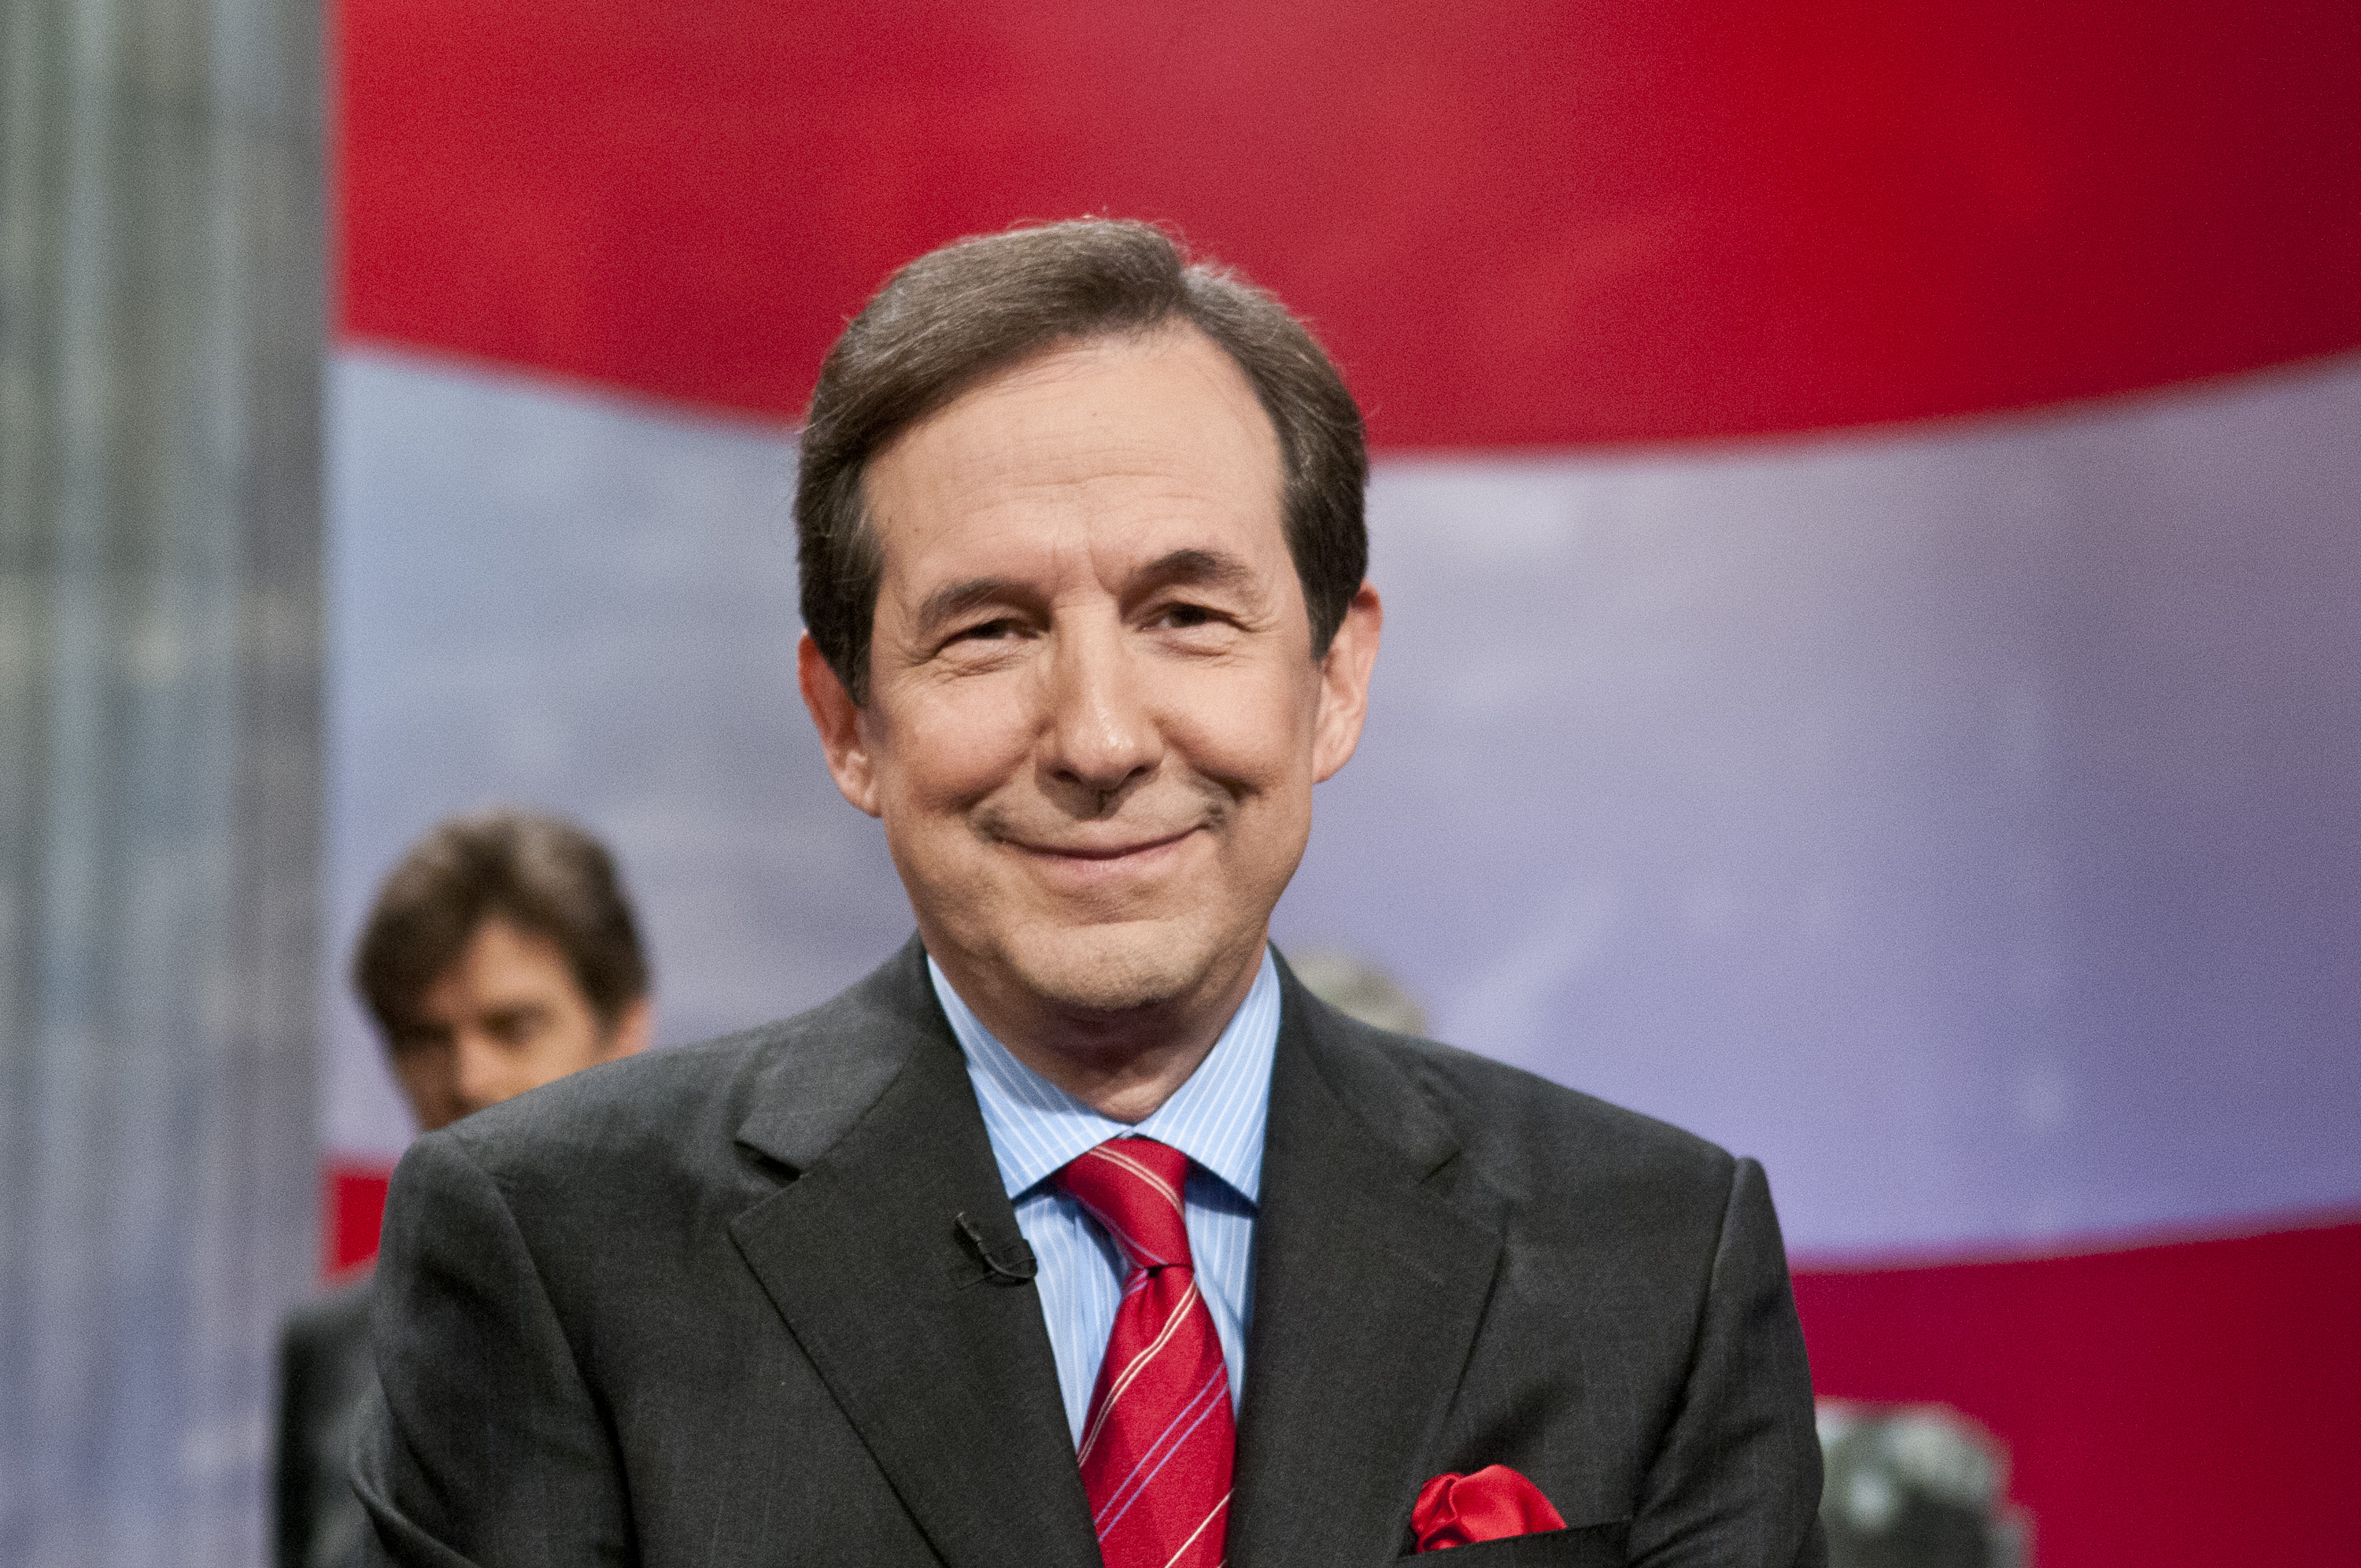 Meet Debate Moderator Chris Wallace: A Registered Democrat ...